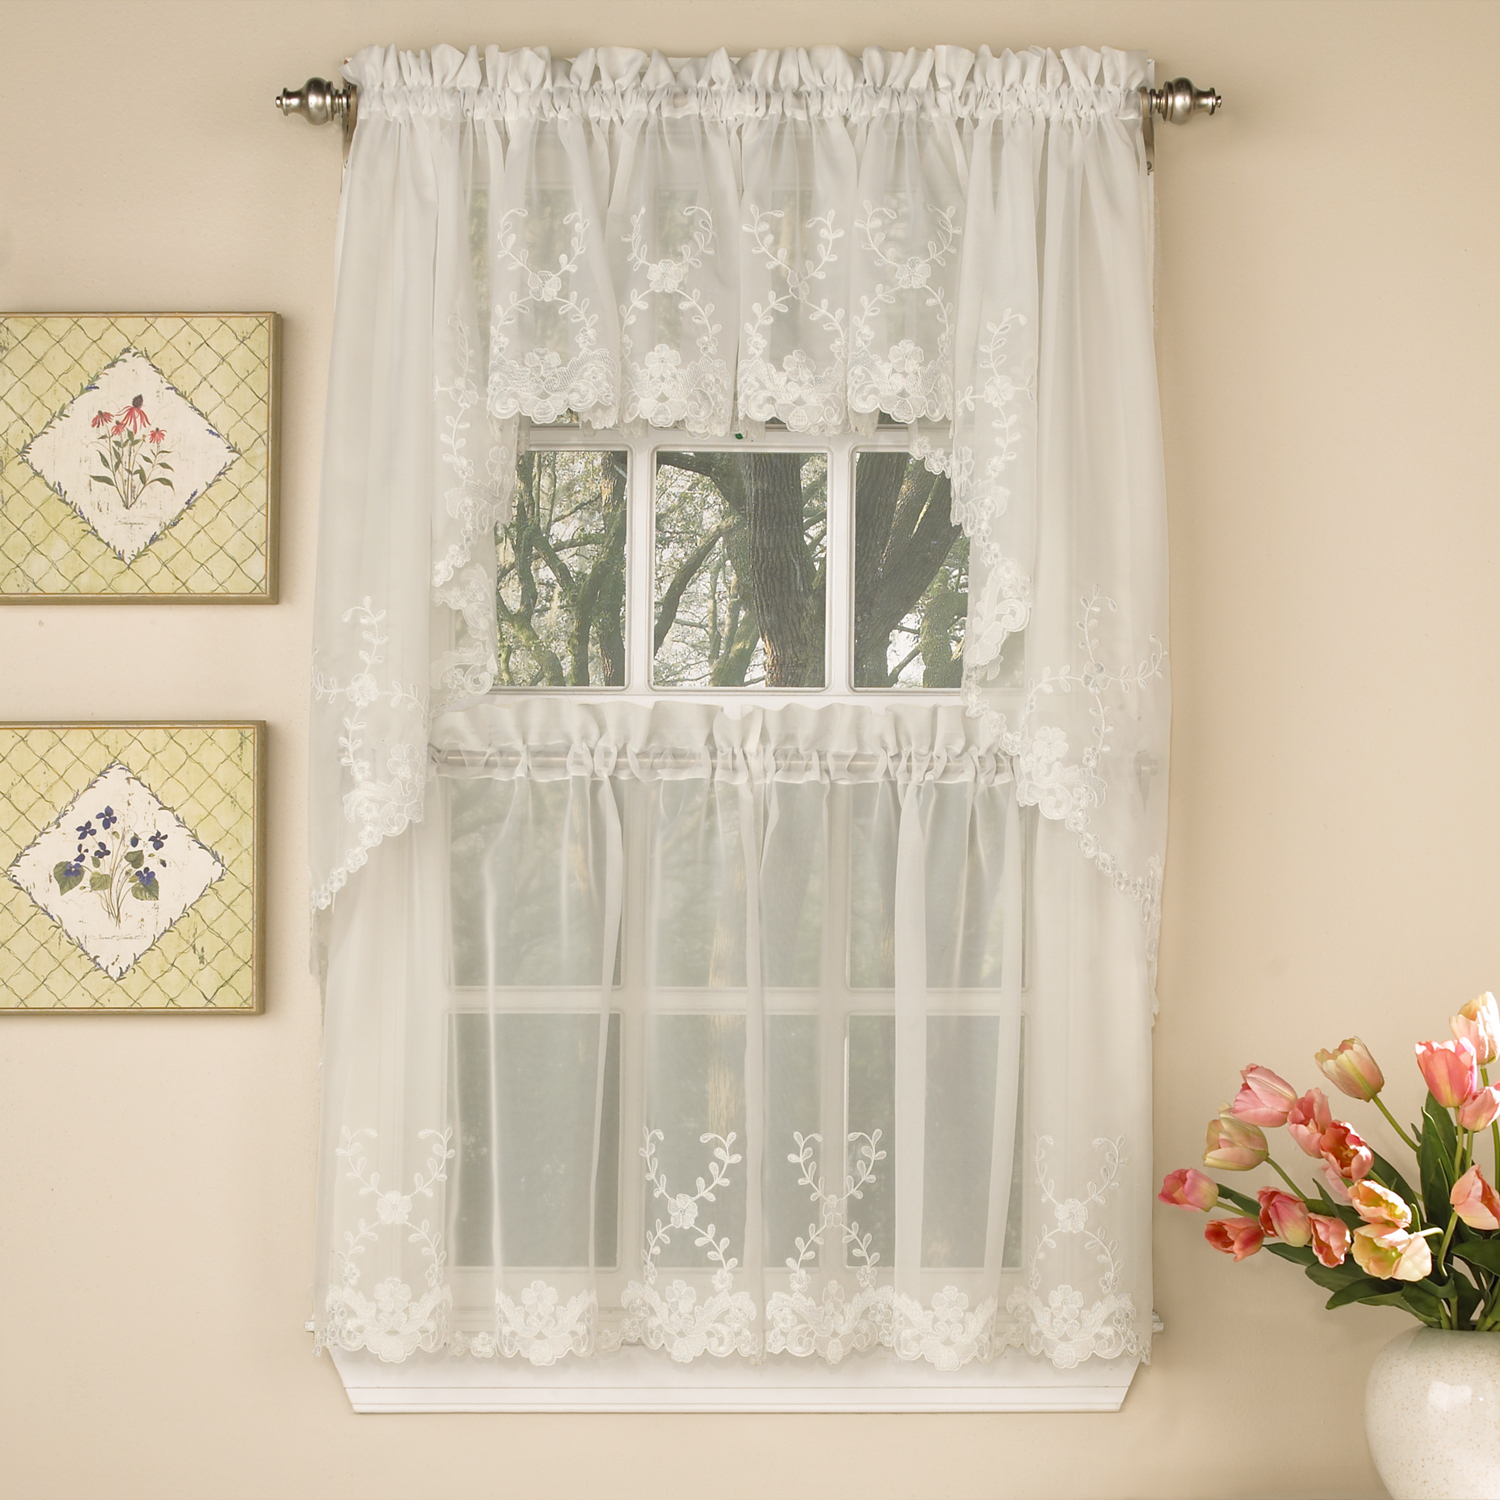 Details About Laurel Leaf Sheer Voile Embroidered Ivory Kitchen Curtains Tier, Valance Or Swag In Ivory Micro Striped Semi Sheer Window Curtain Pieces (View 9 of 20)